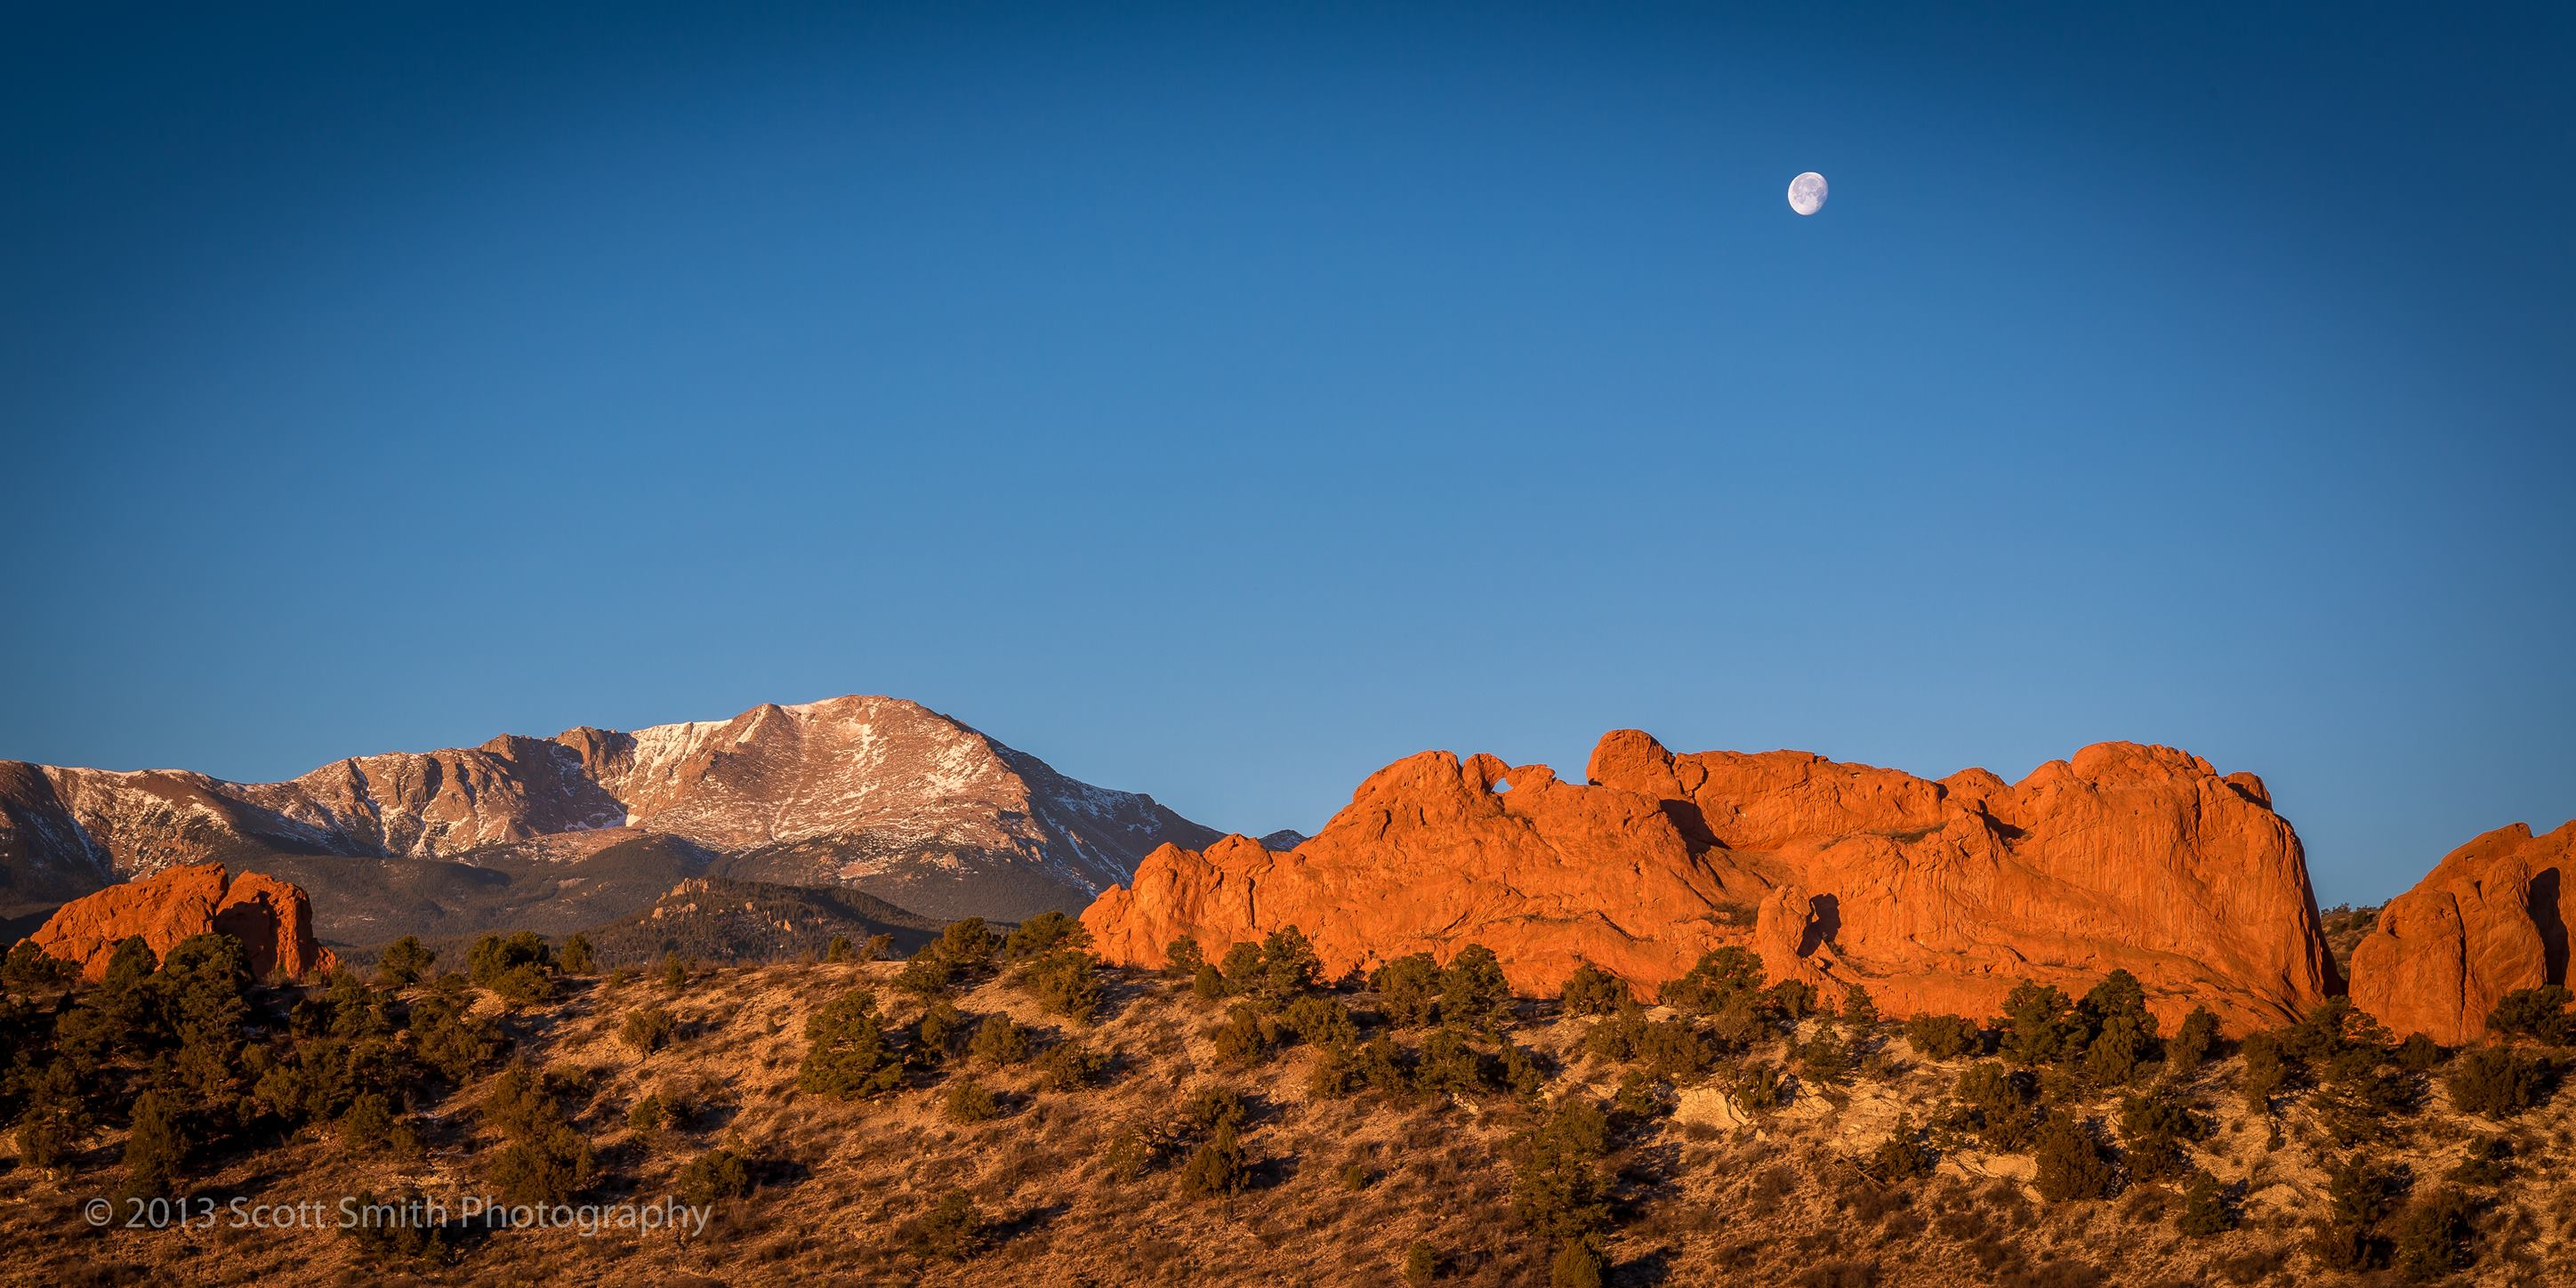 Sun Rising, Moon Setting - The moon sets as the morning sun lights up the Garden of the Gods and Pike's Peak in Manitou Springs, Colorado. by D Scott Smith